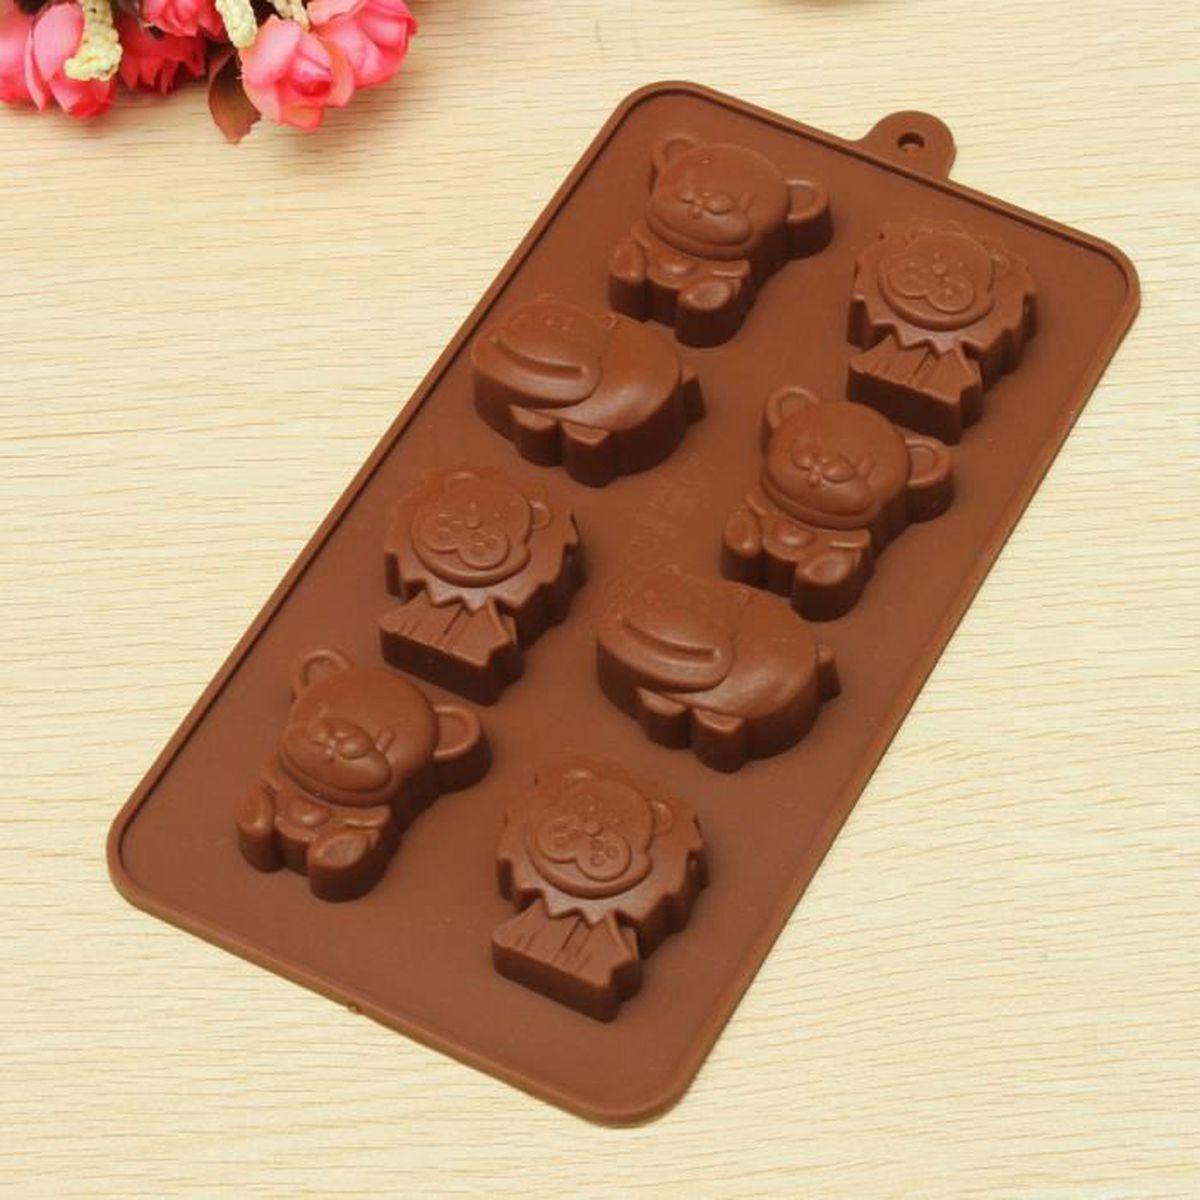 g teau moule silicone animal forme chocolat fondant biscuit emporte pi ce diy achat vente. Black Bedroom Furniture Sets. Home Design Ideas